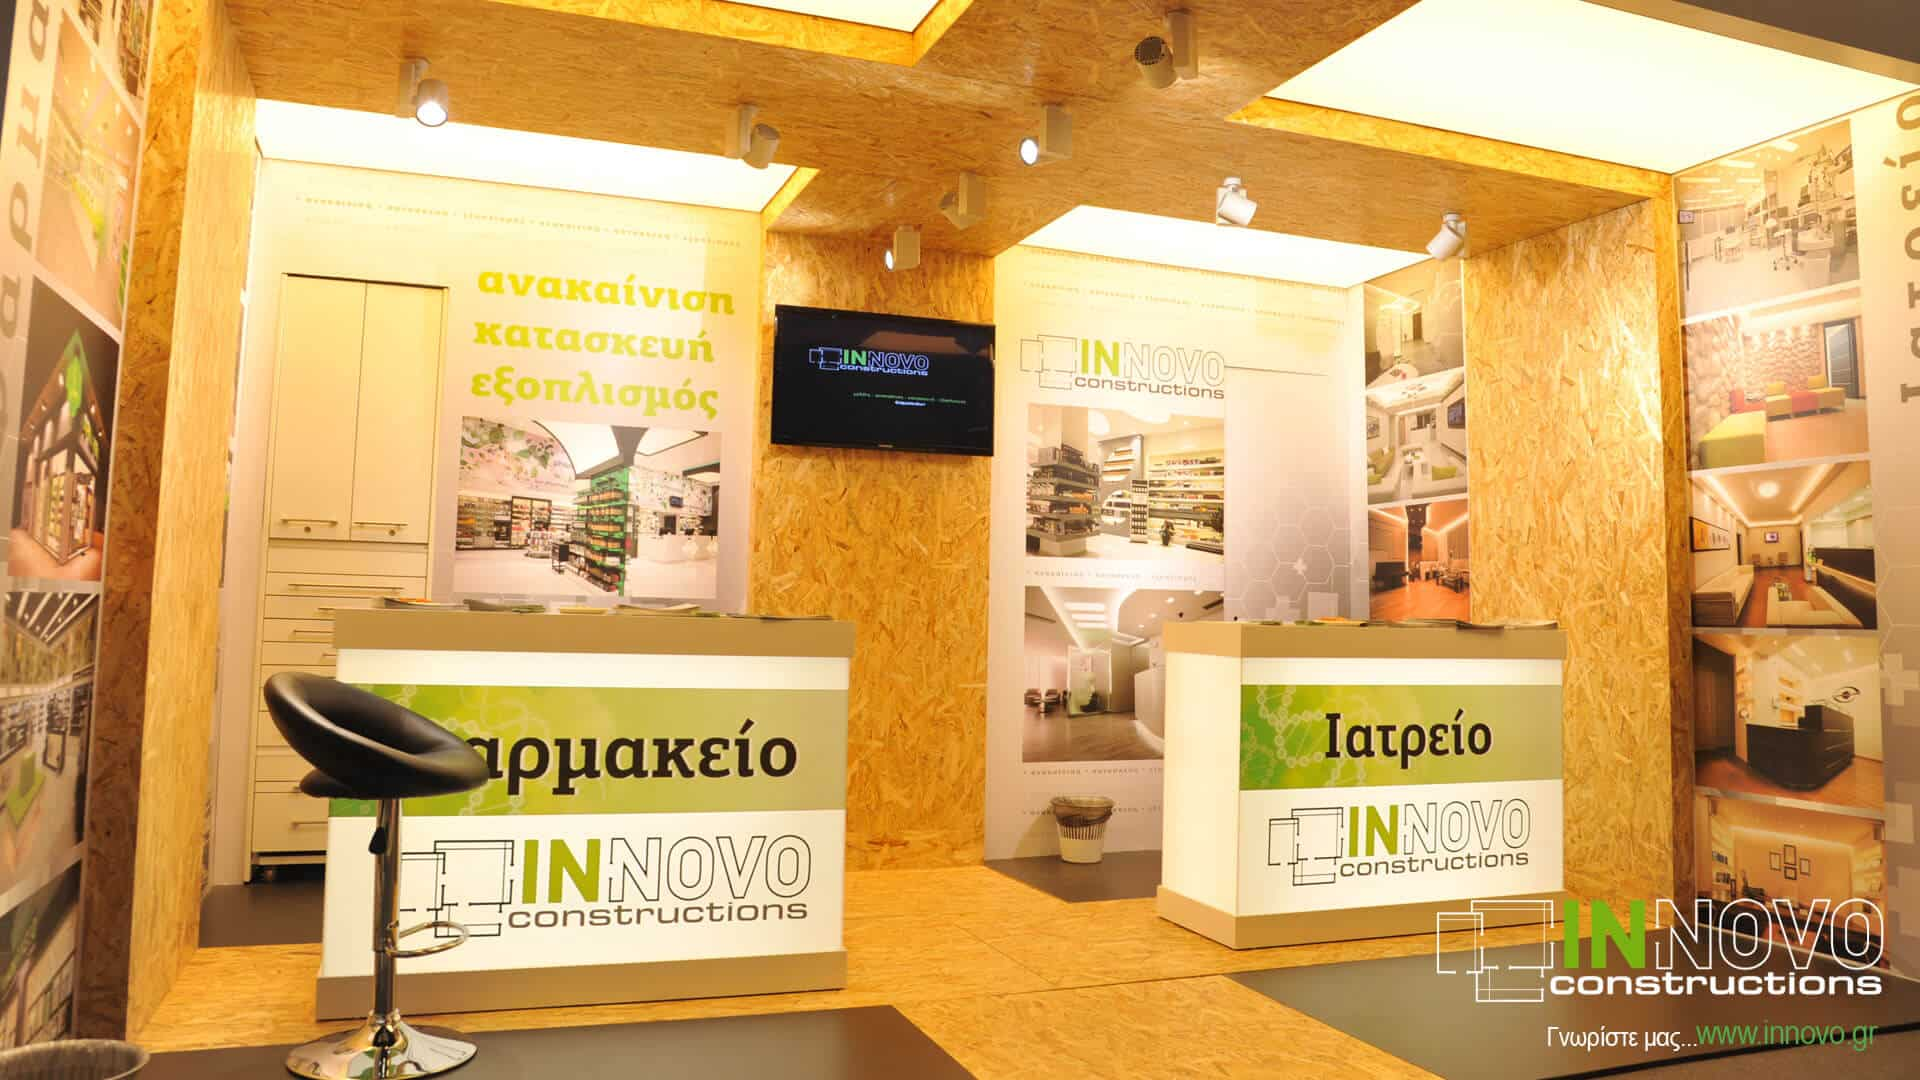 kataskevi-peripterou-exhibition-stand-construction-periptero-mas-6i-imerida-farmakopoion2015-6